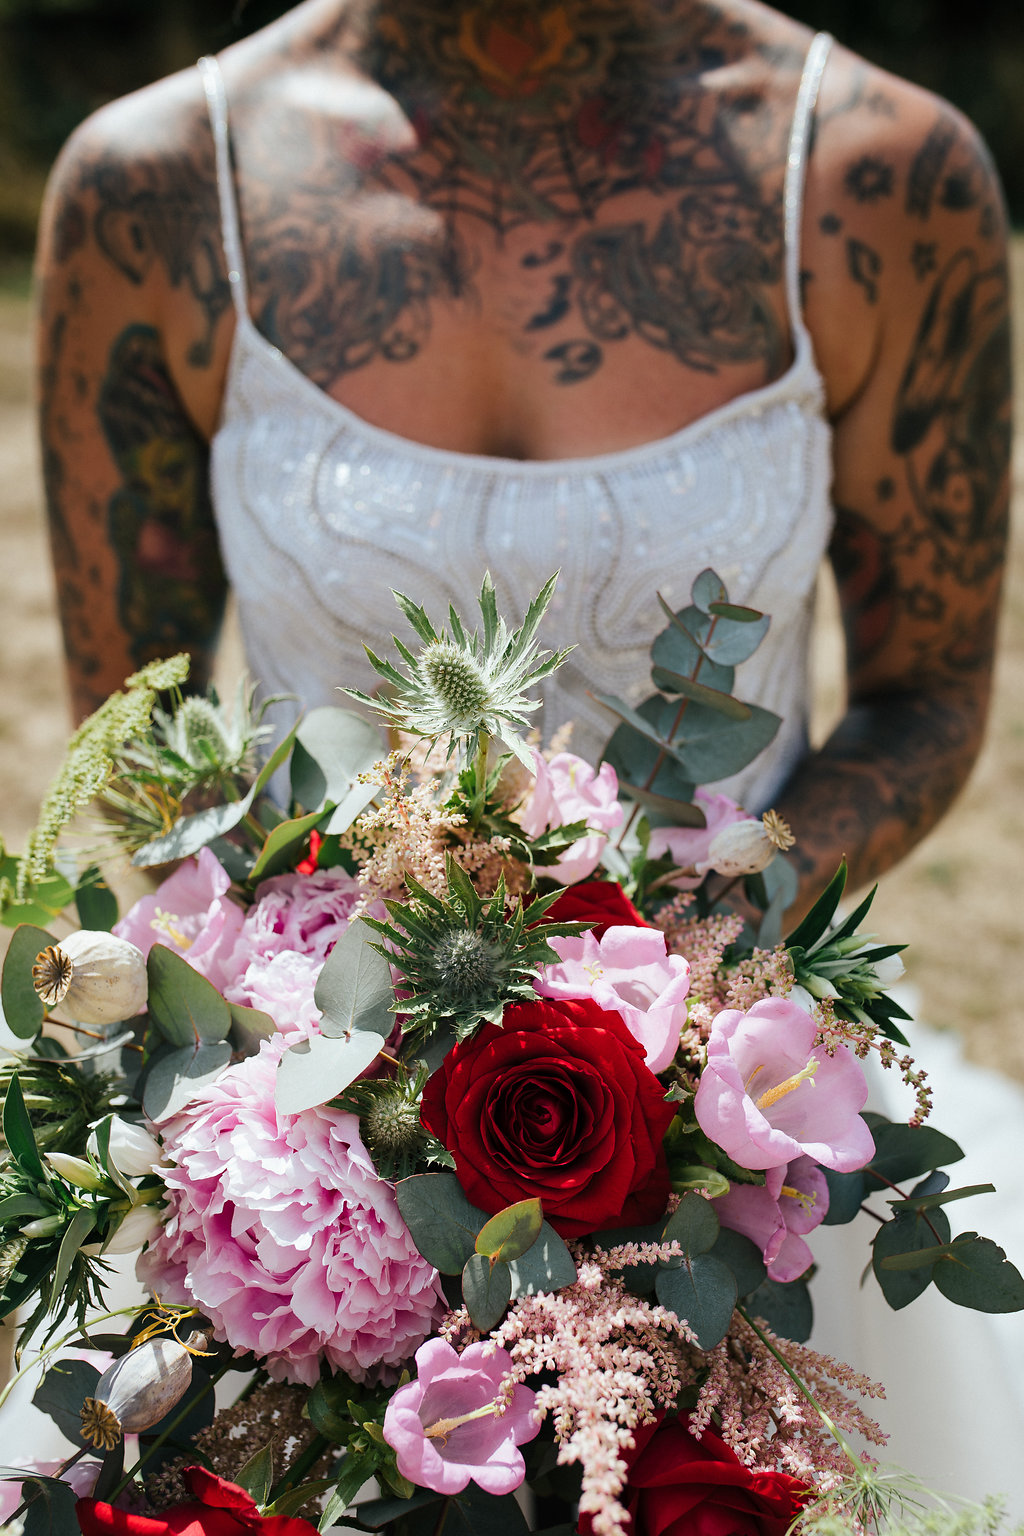 Tattooed bride with red and pink hand-tied bouquet